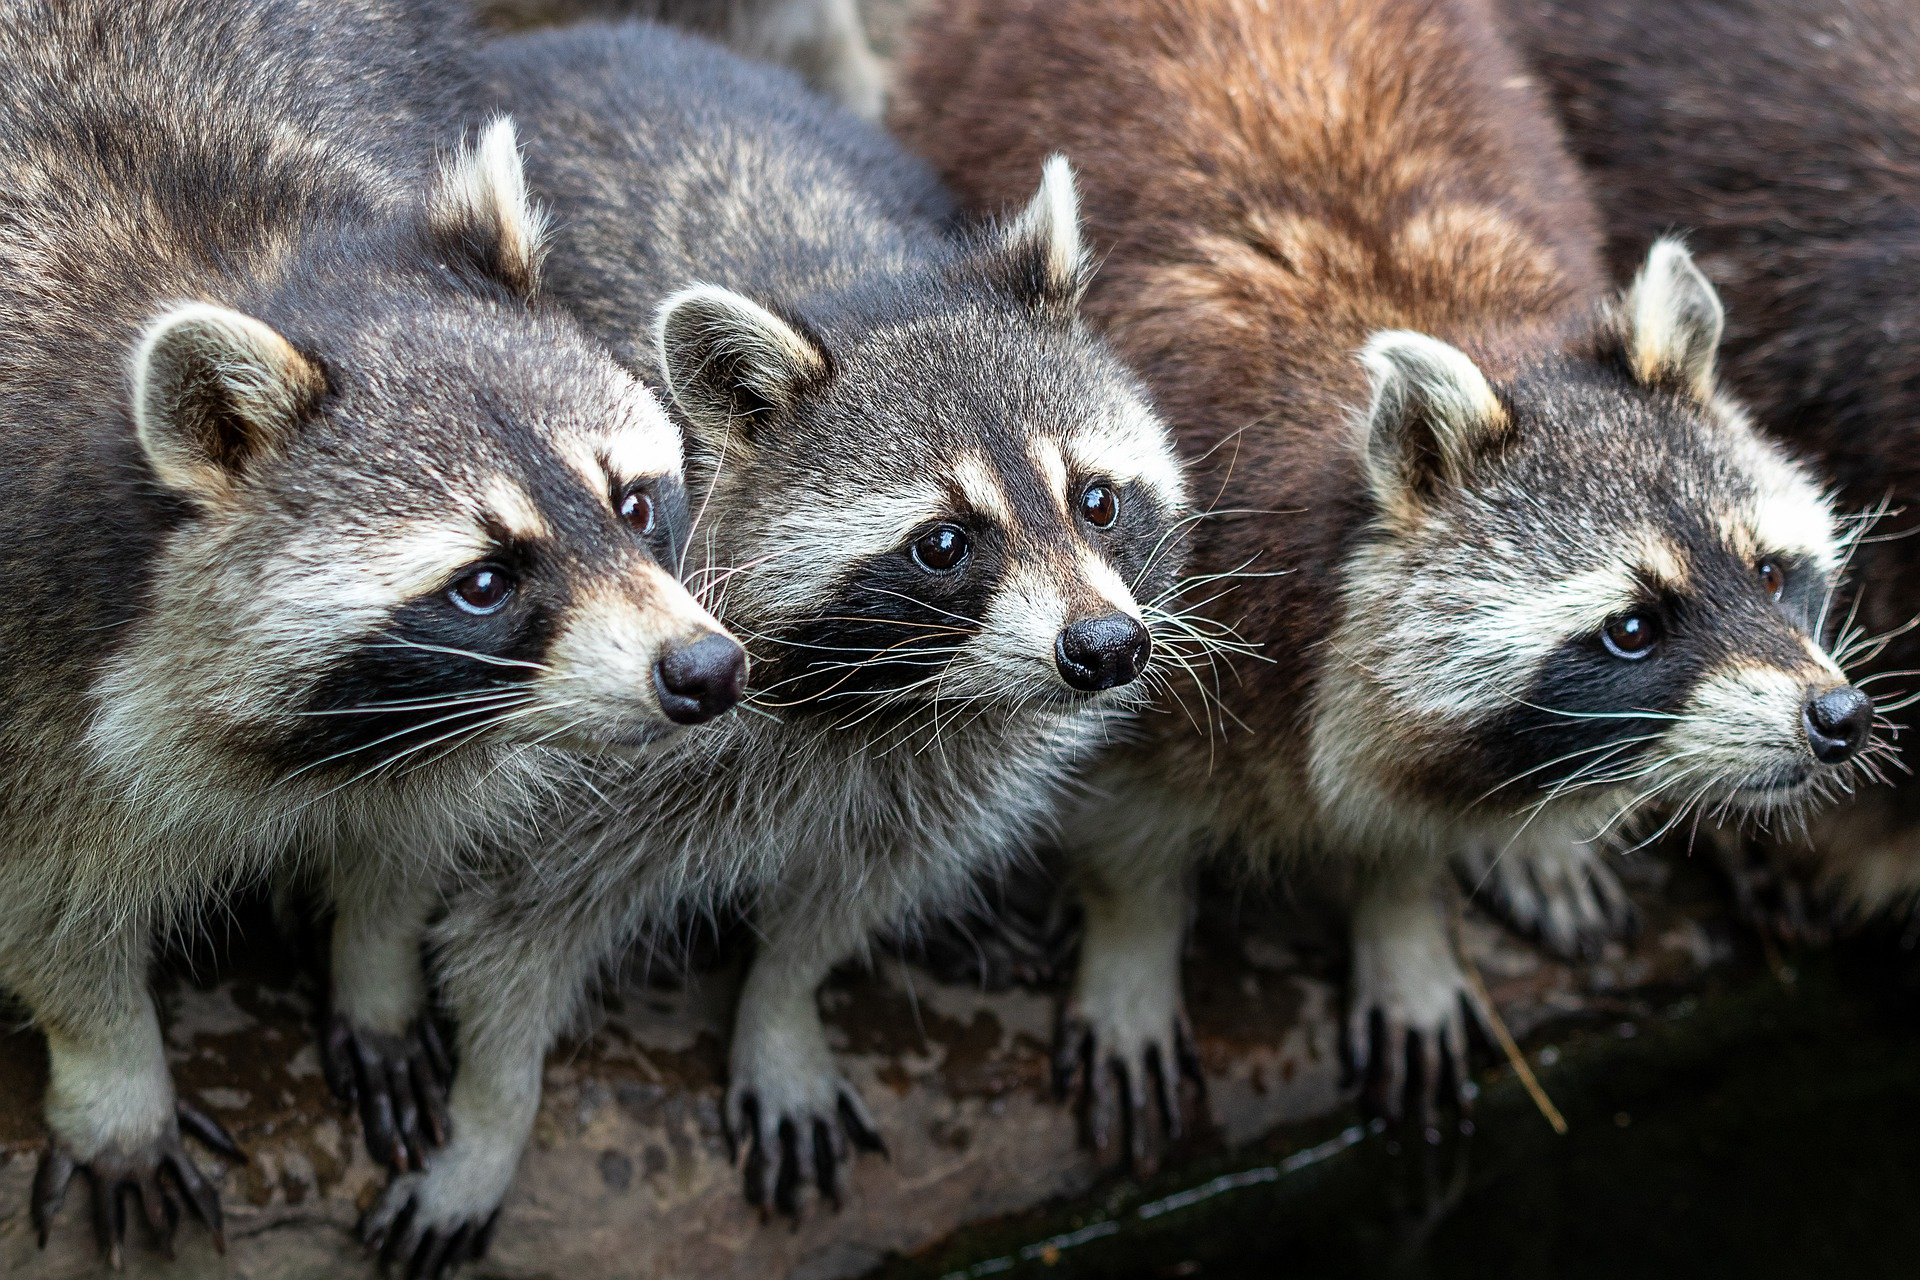 A group of raccoons